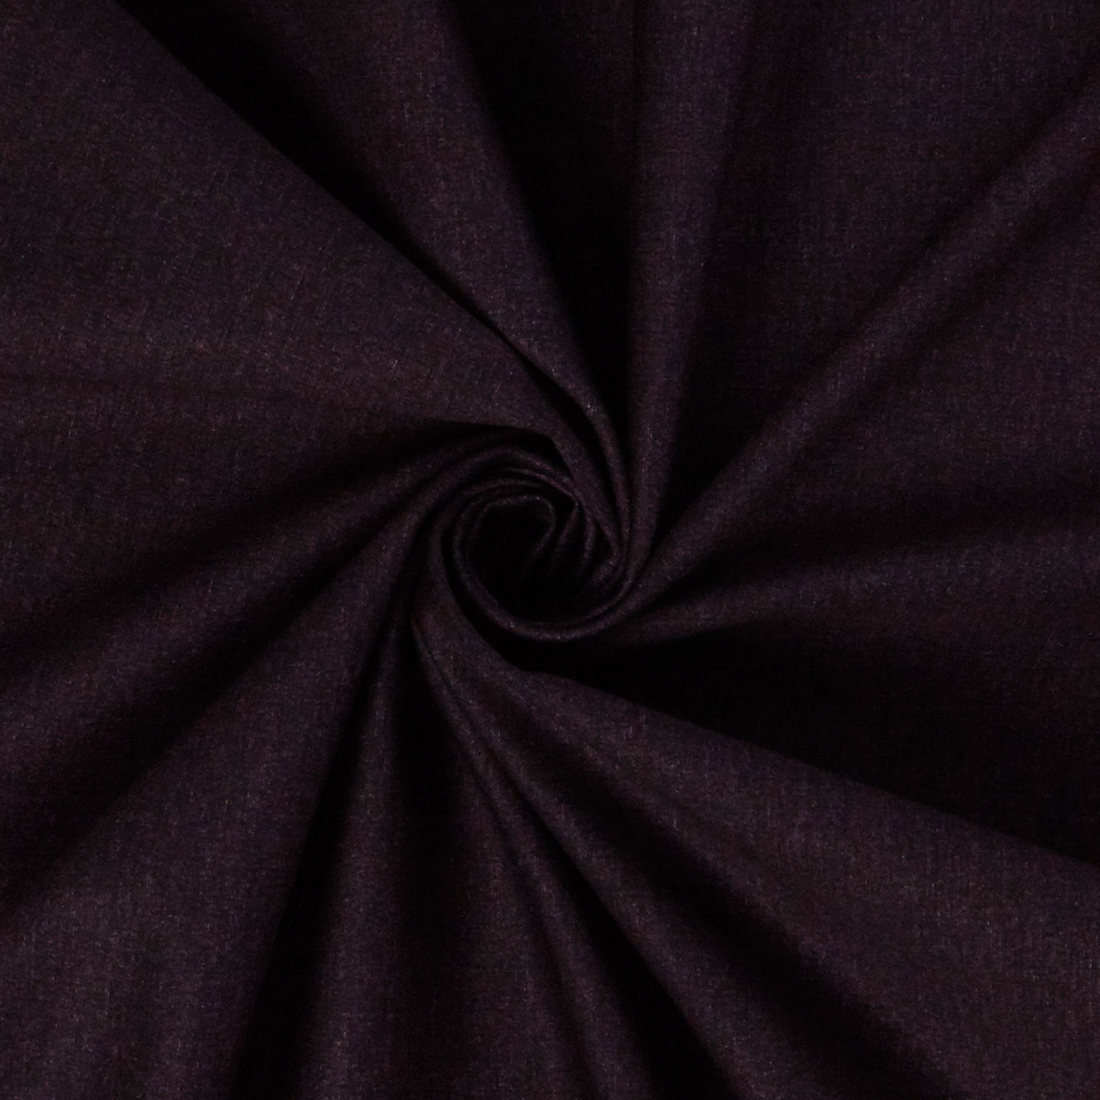 Plain Knit Damson Dress Fabric